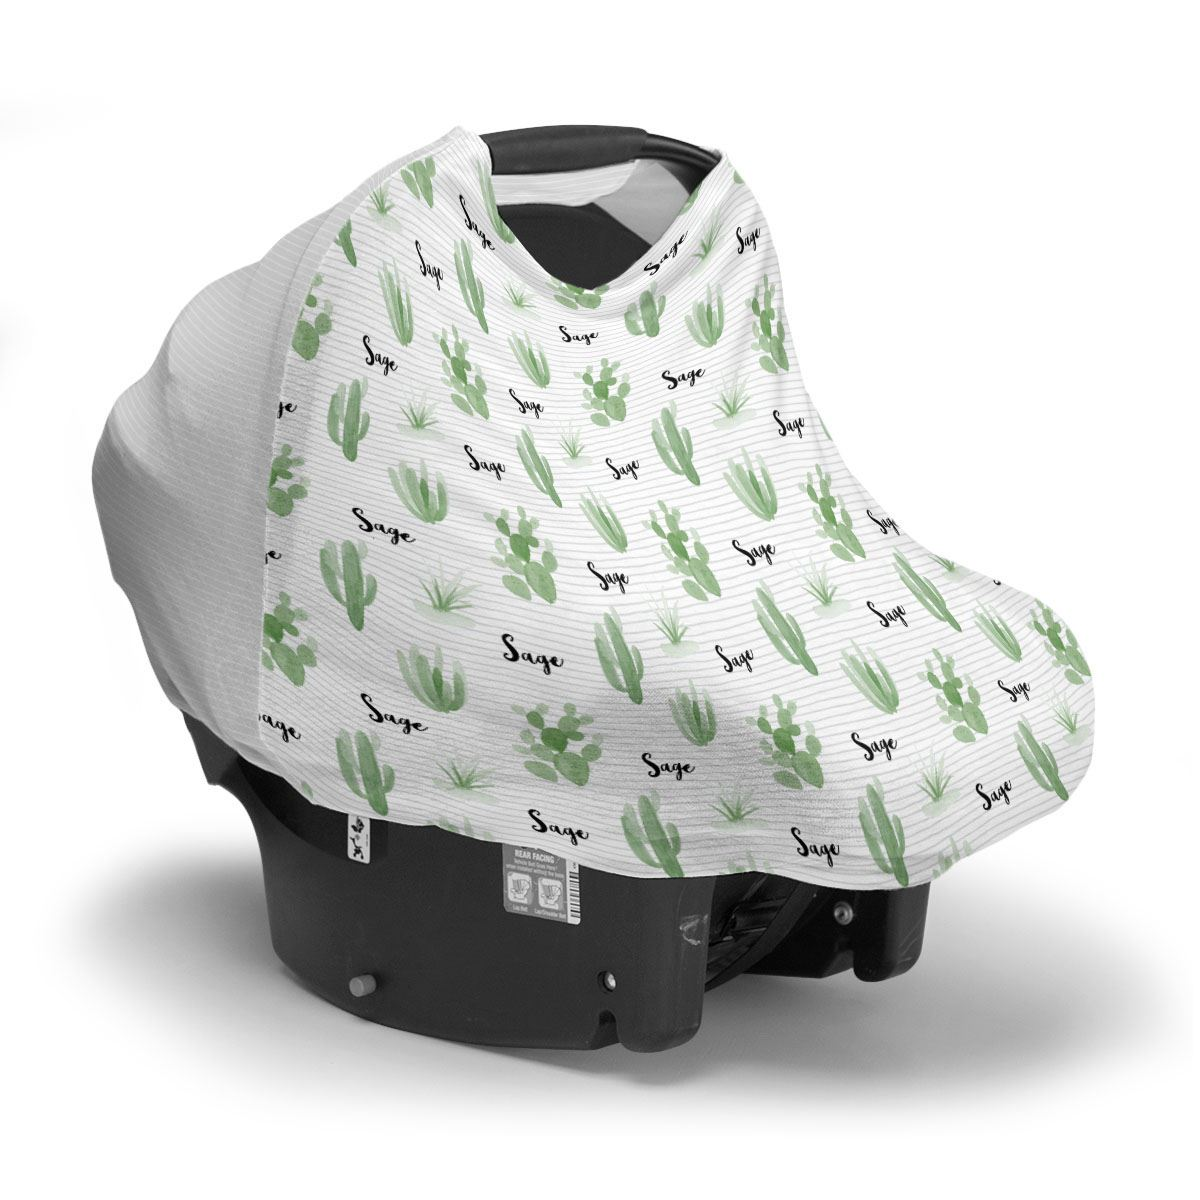 Tera's Earthy Cactus | Car Seat Cover (Multi-Use)